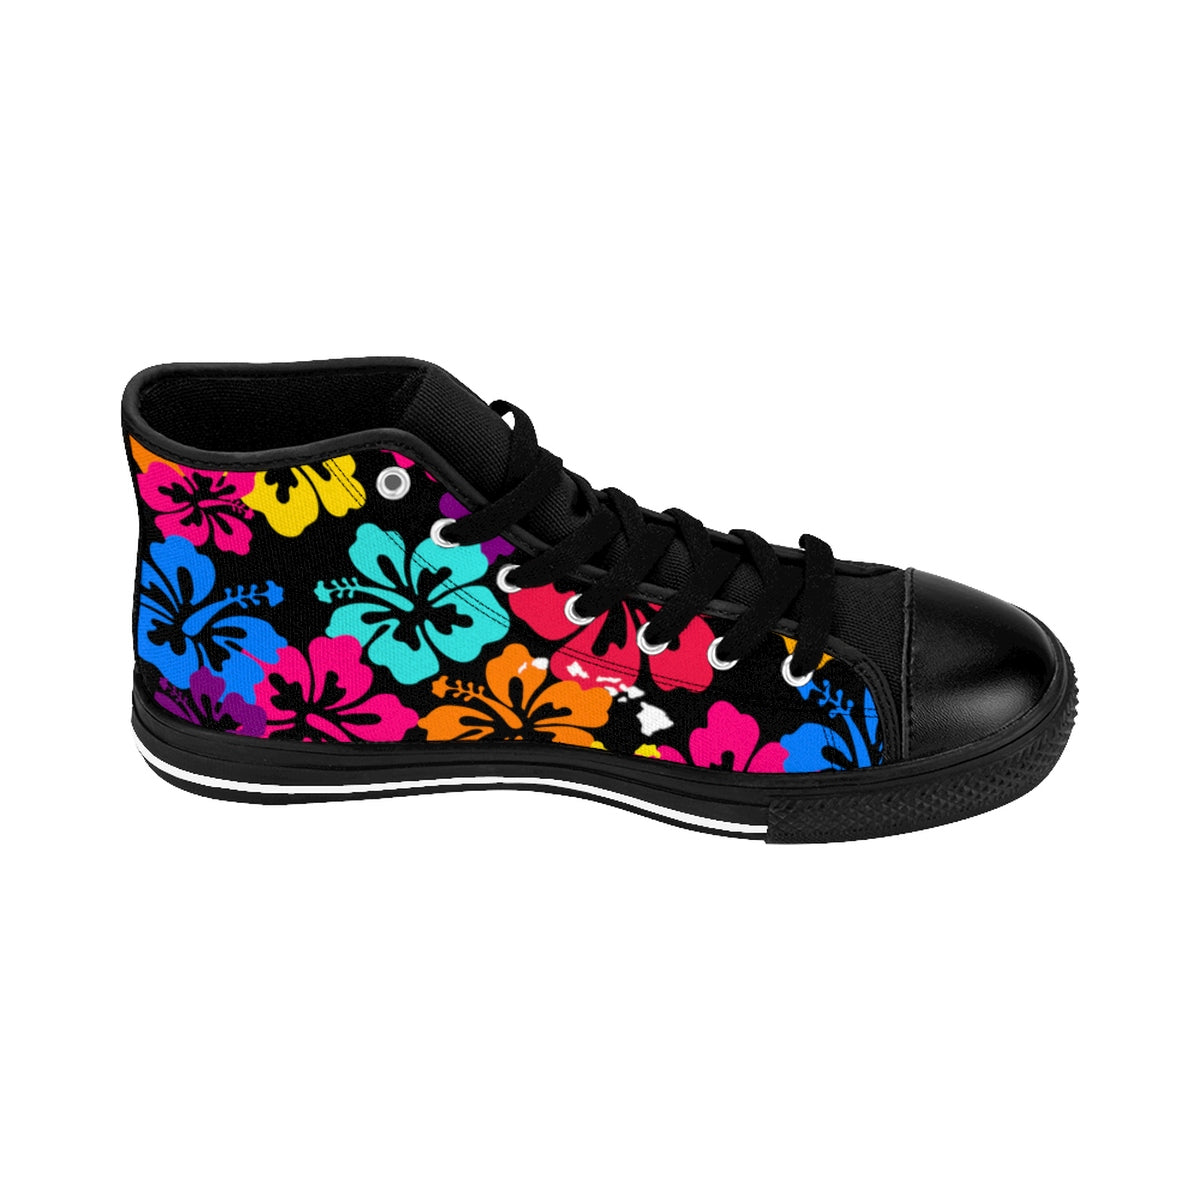 Women's Aloha High-top Sneakers